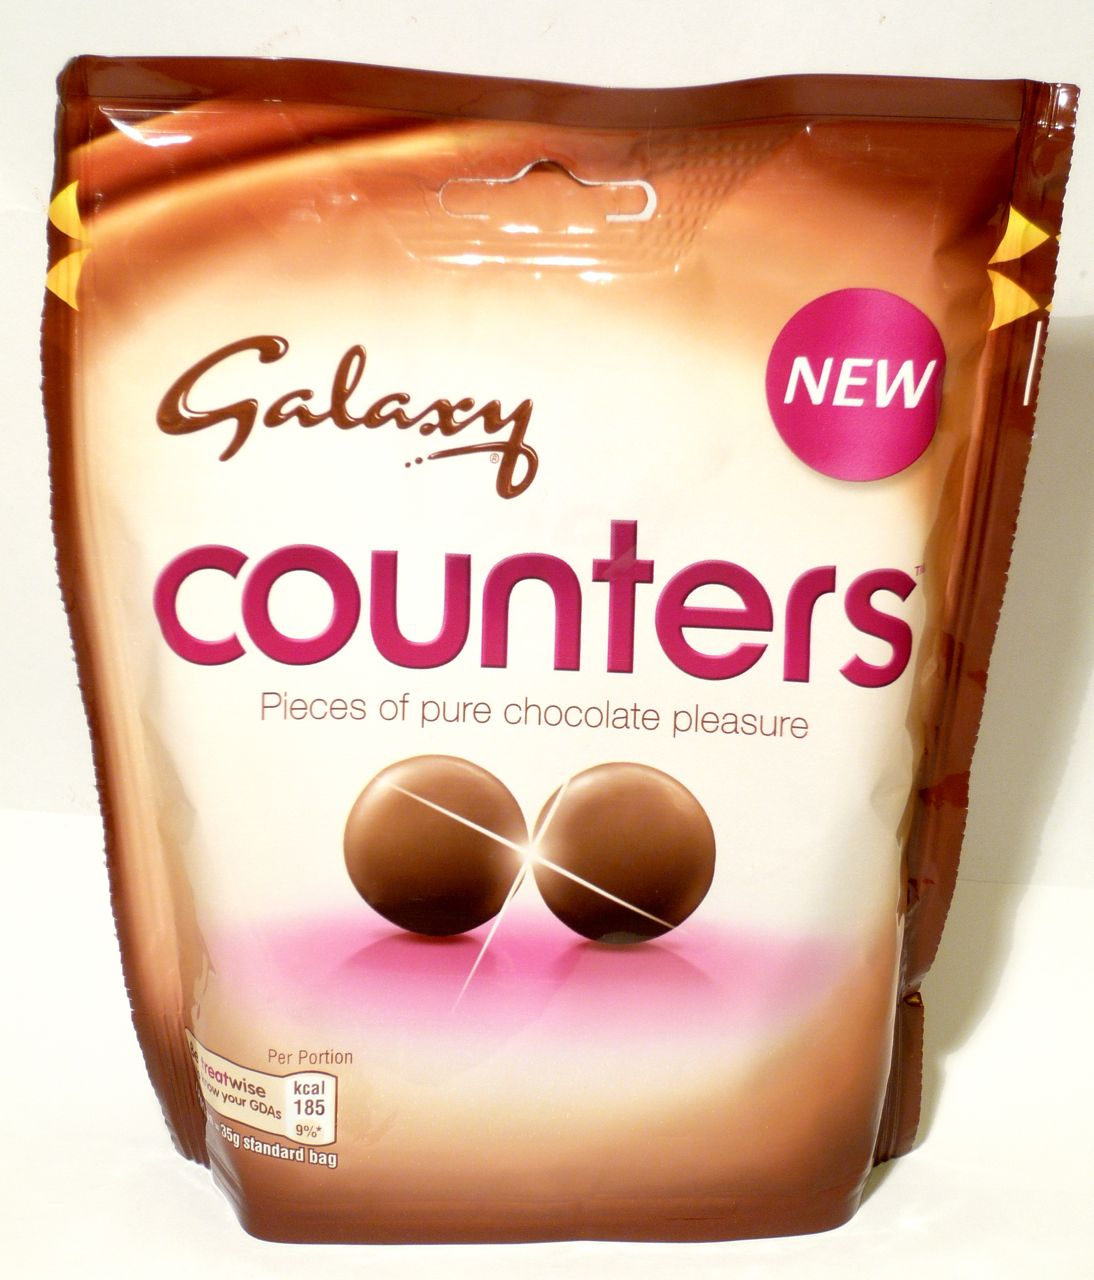 Galaxy Counters Chocolate Review